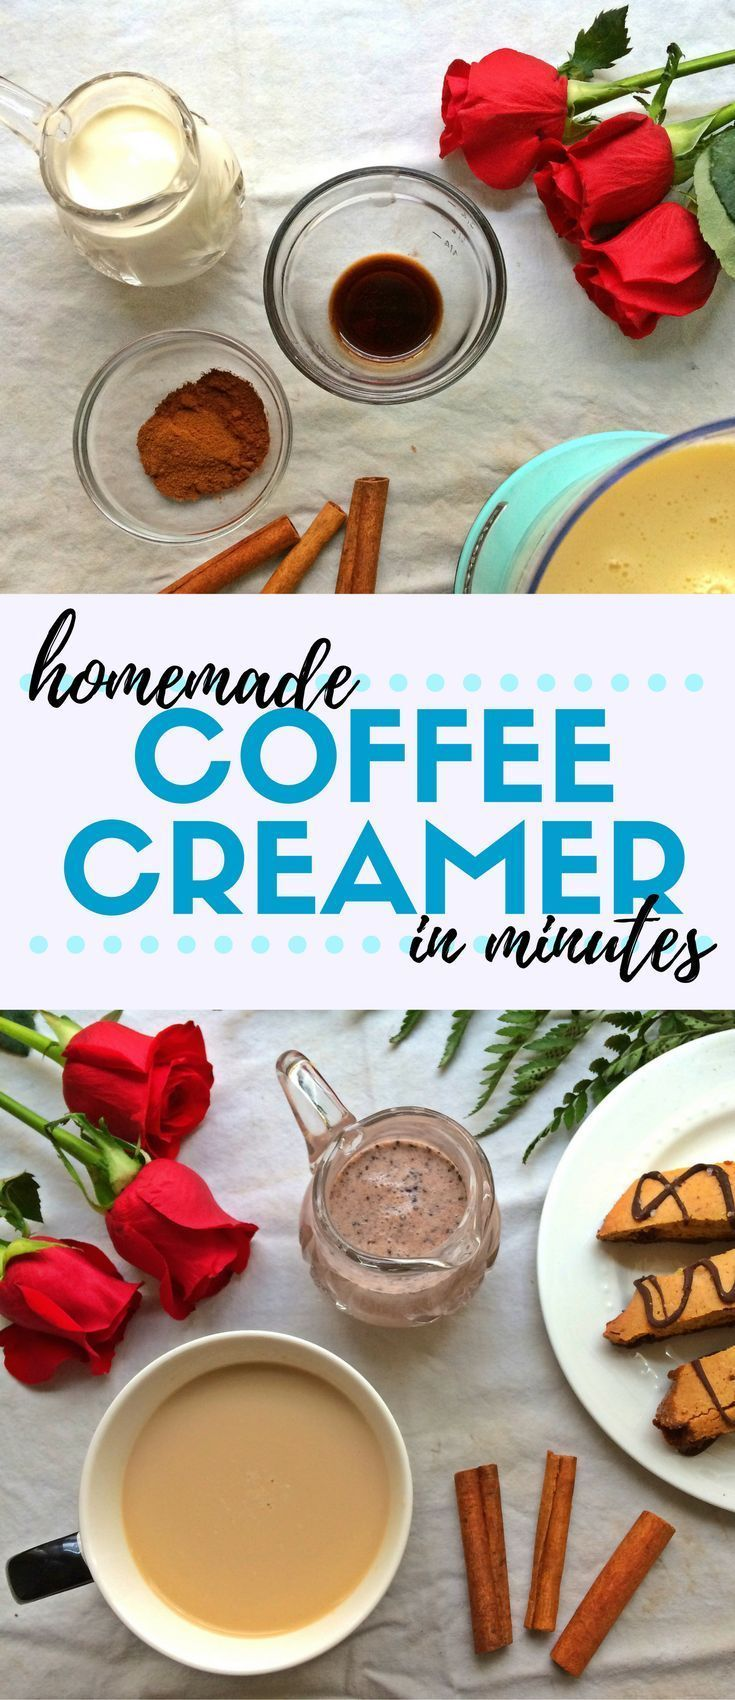 Ever wondered how to make homemade coffee creamer? It's so